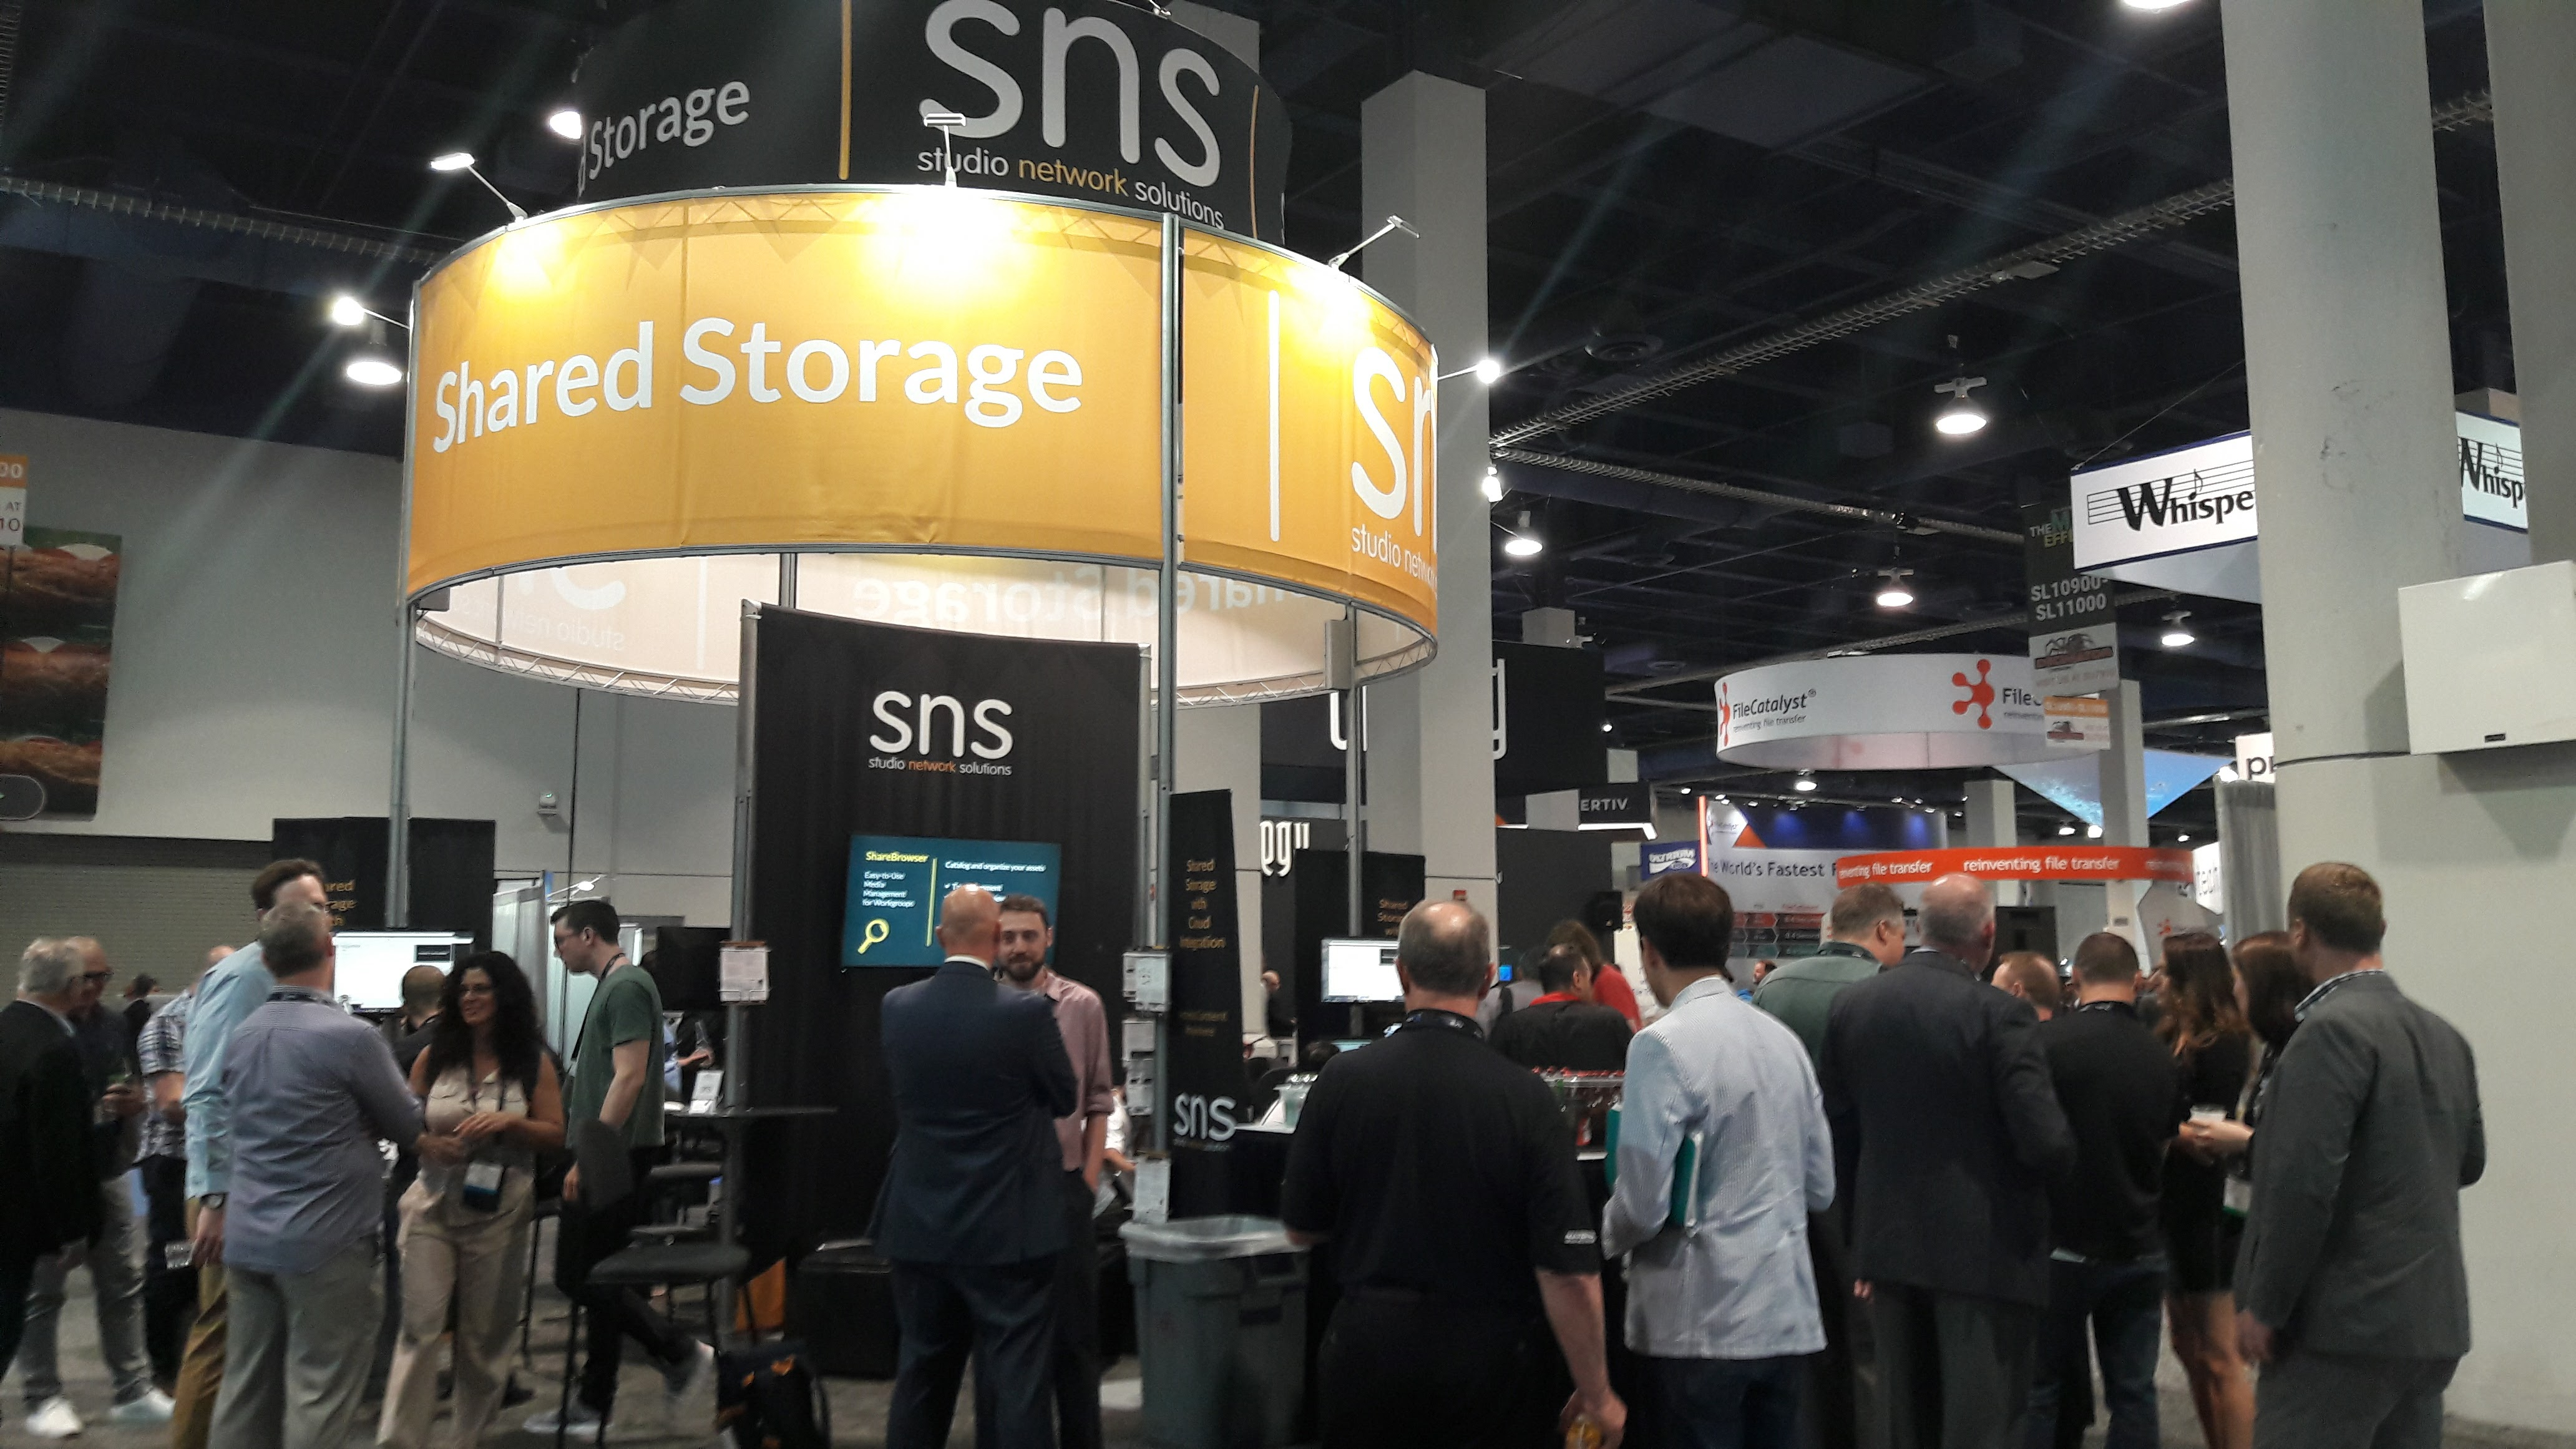 Studio Network Solutions_NAB 2017_Stand Image 3